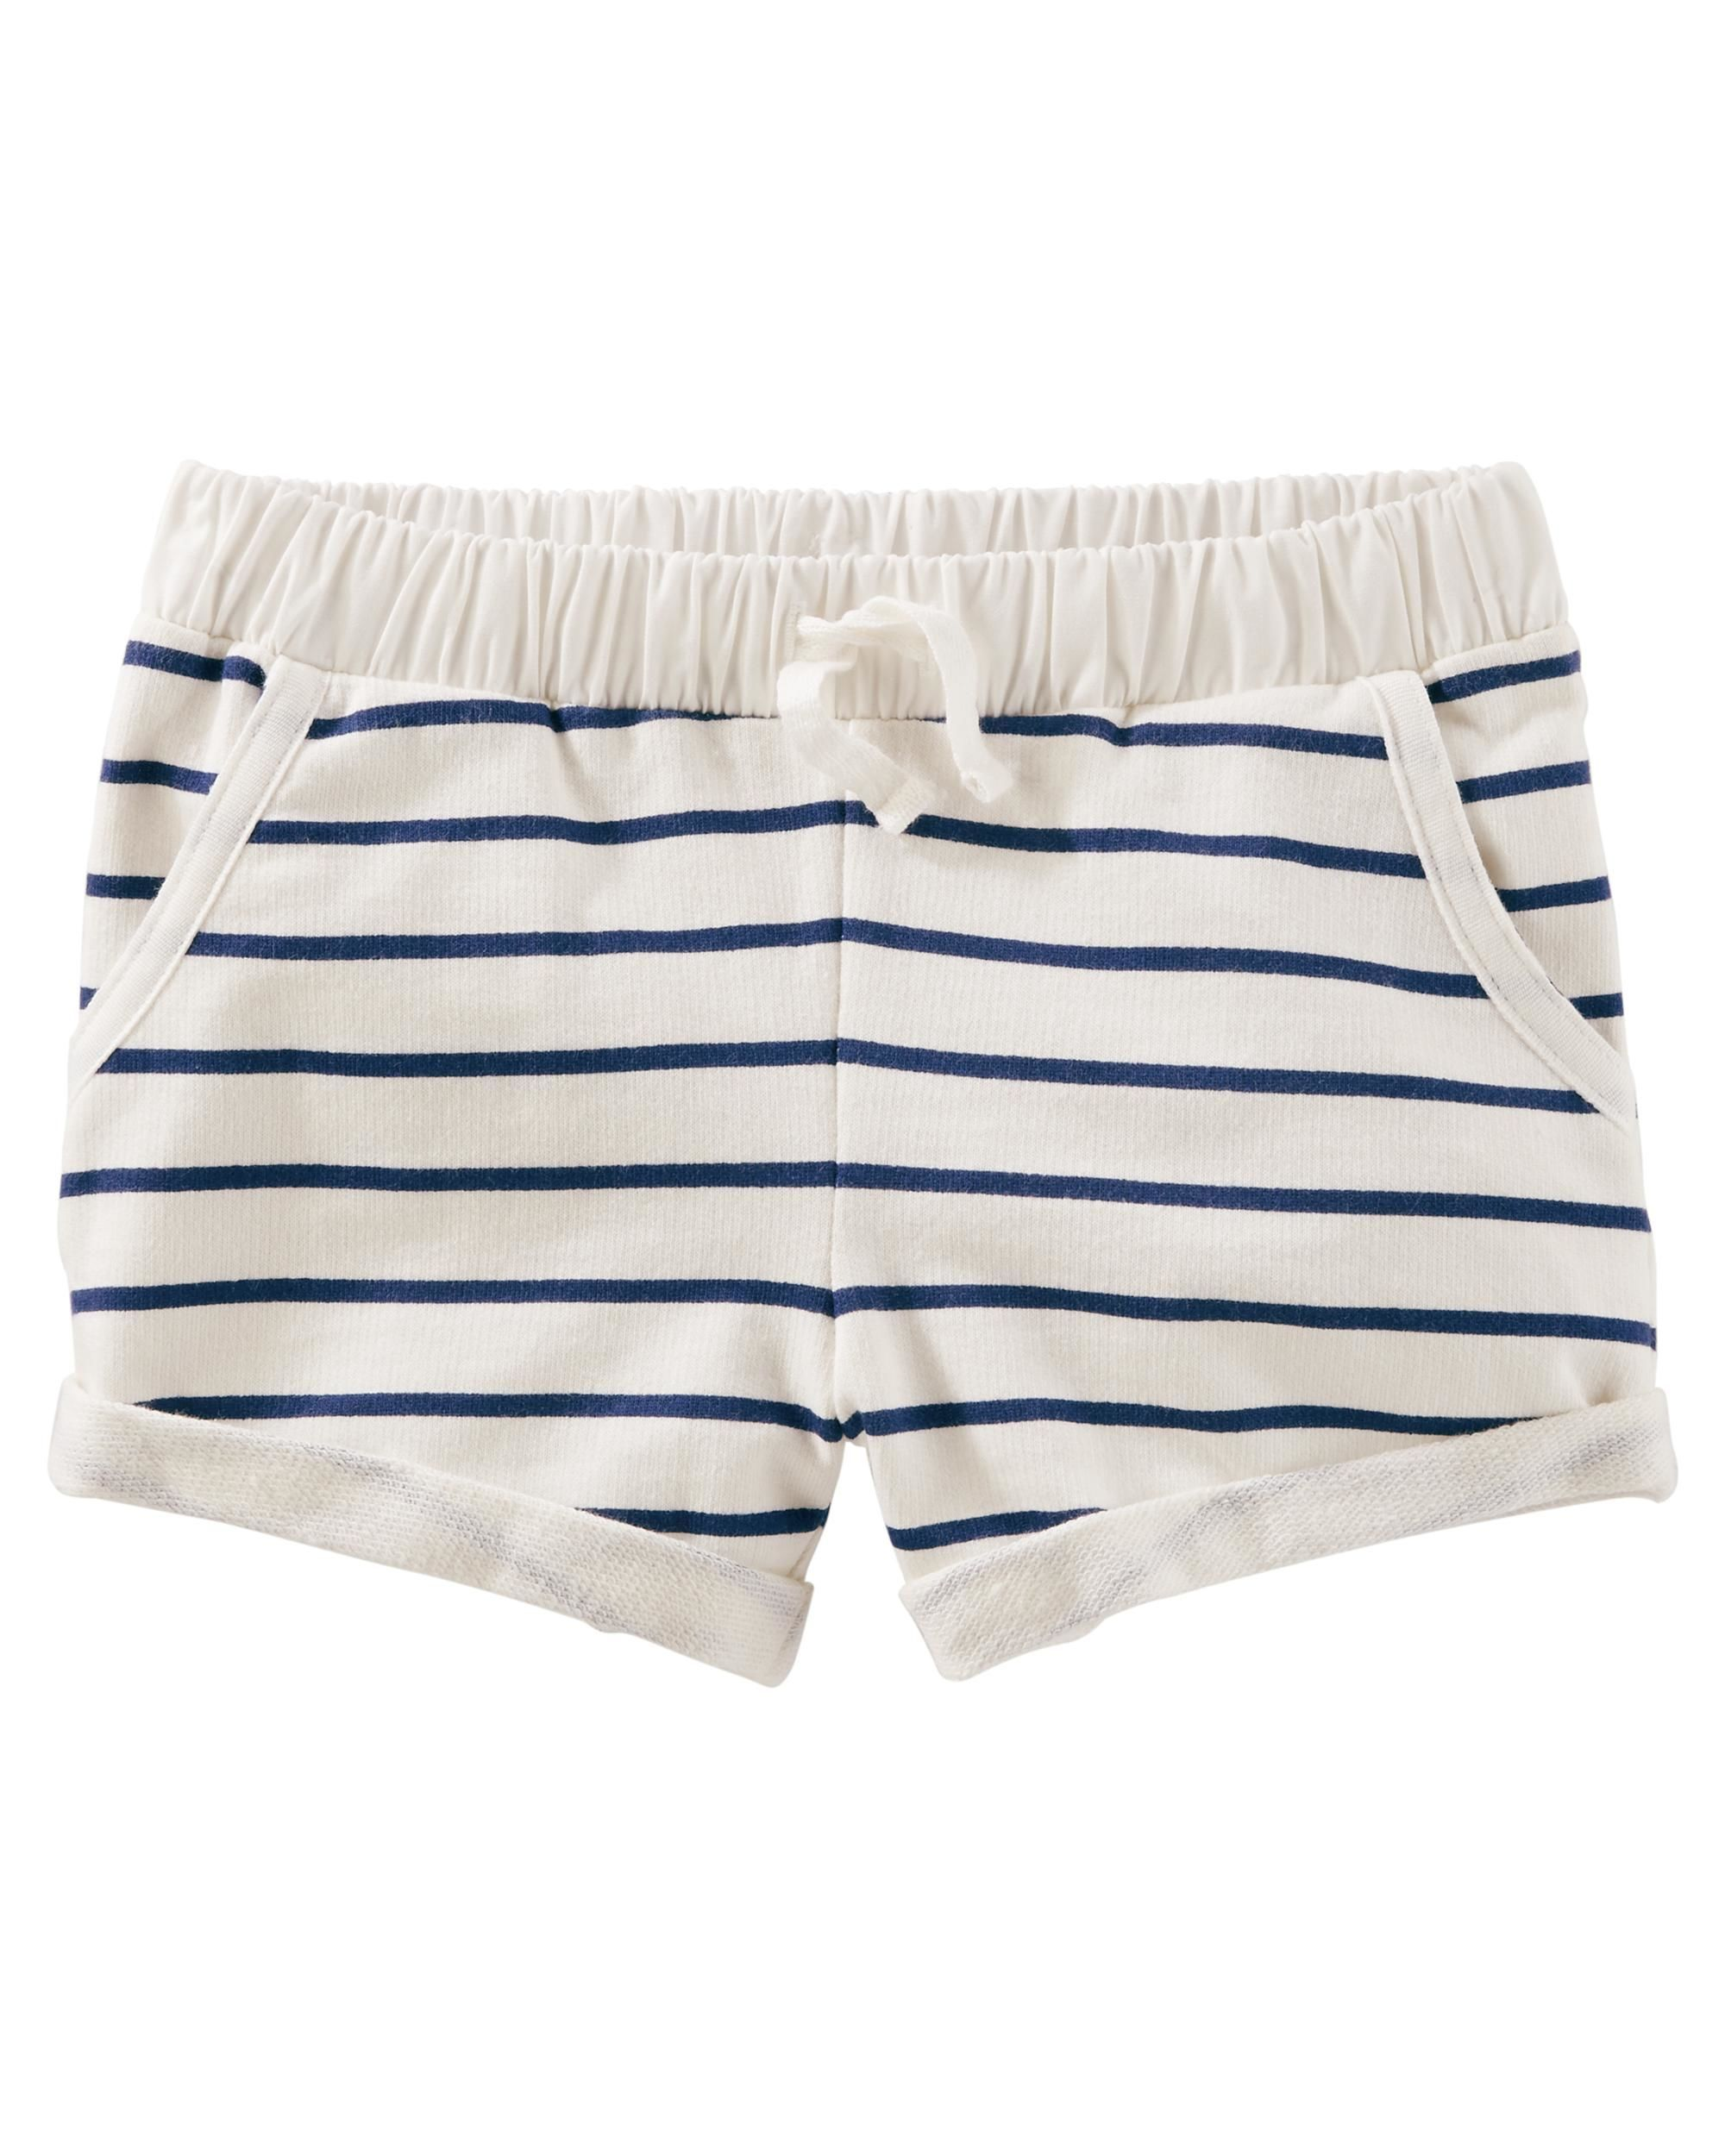 da82dddcff Oshkosh Bgosh Boys French Terry Shorts Navy Clothing, Shoes & Jewelry Shorts